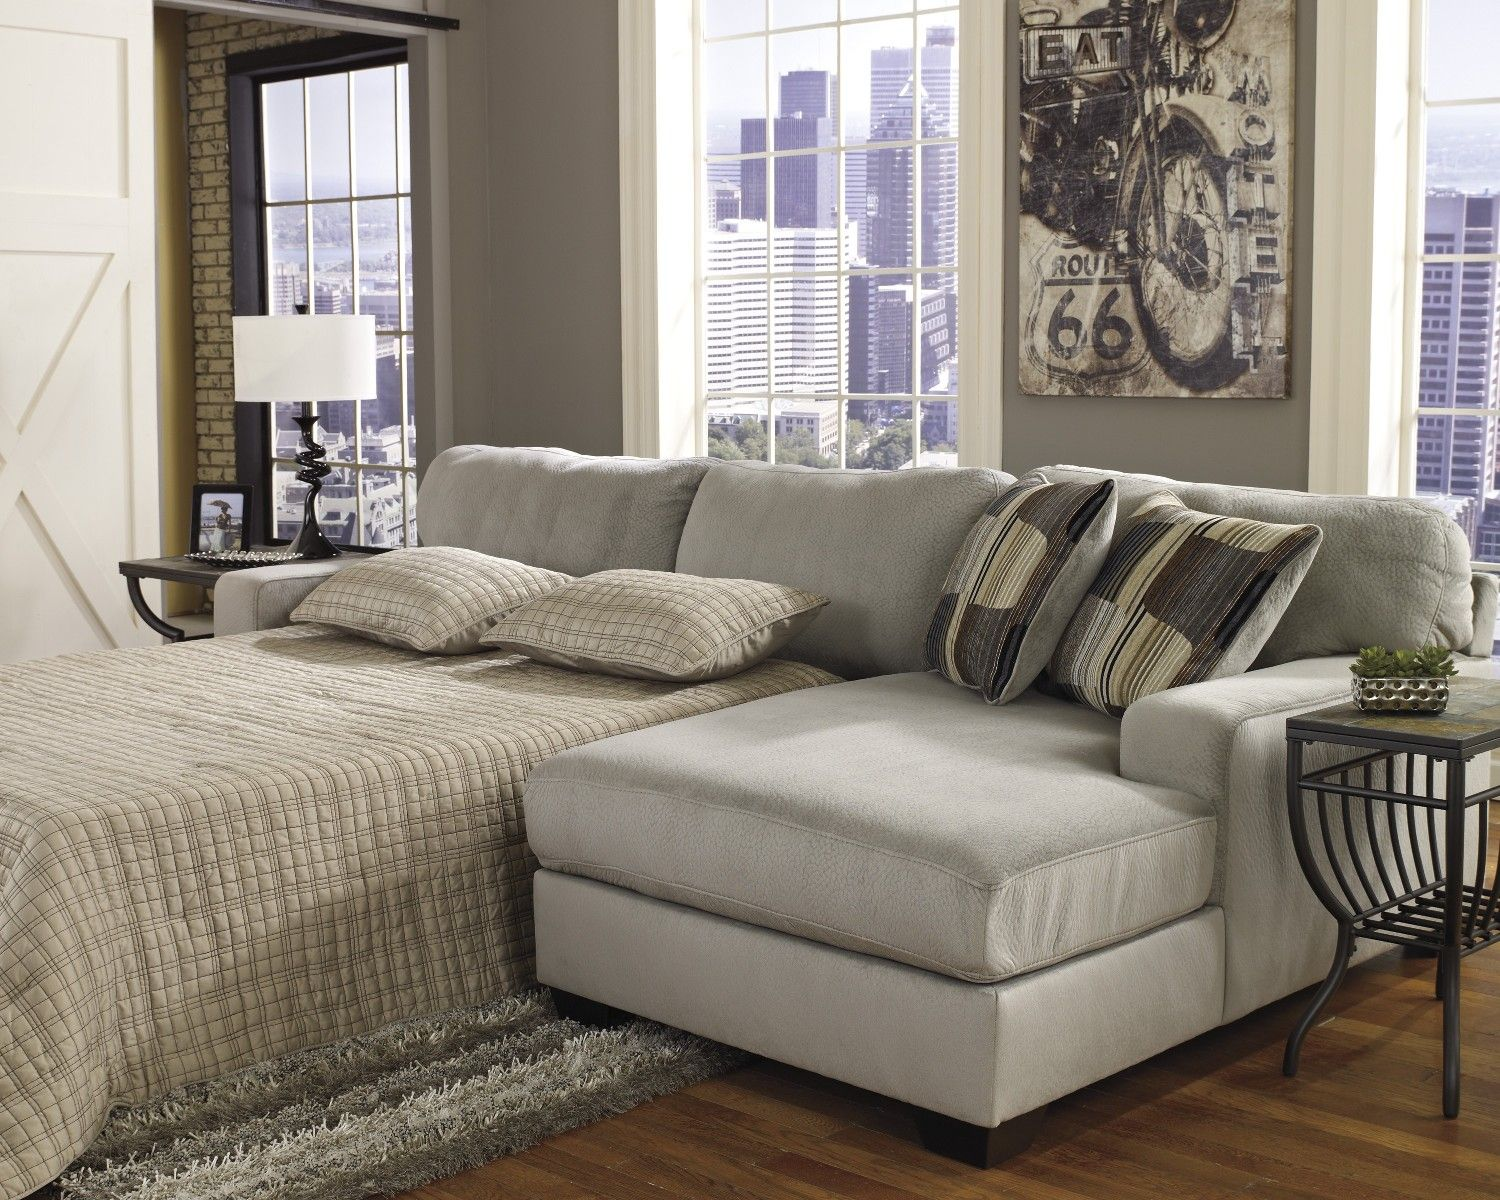 Tips To Consider When Ing A Sleeper Sofa